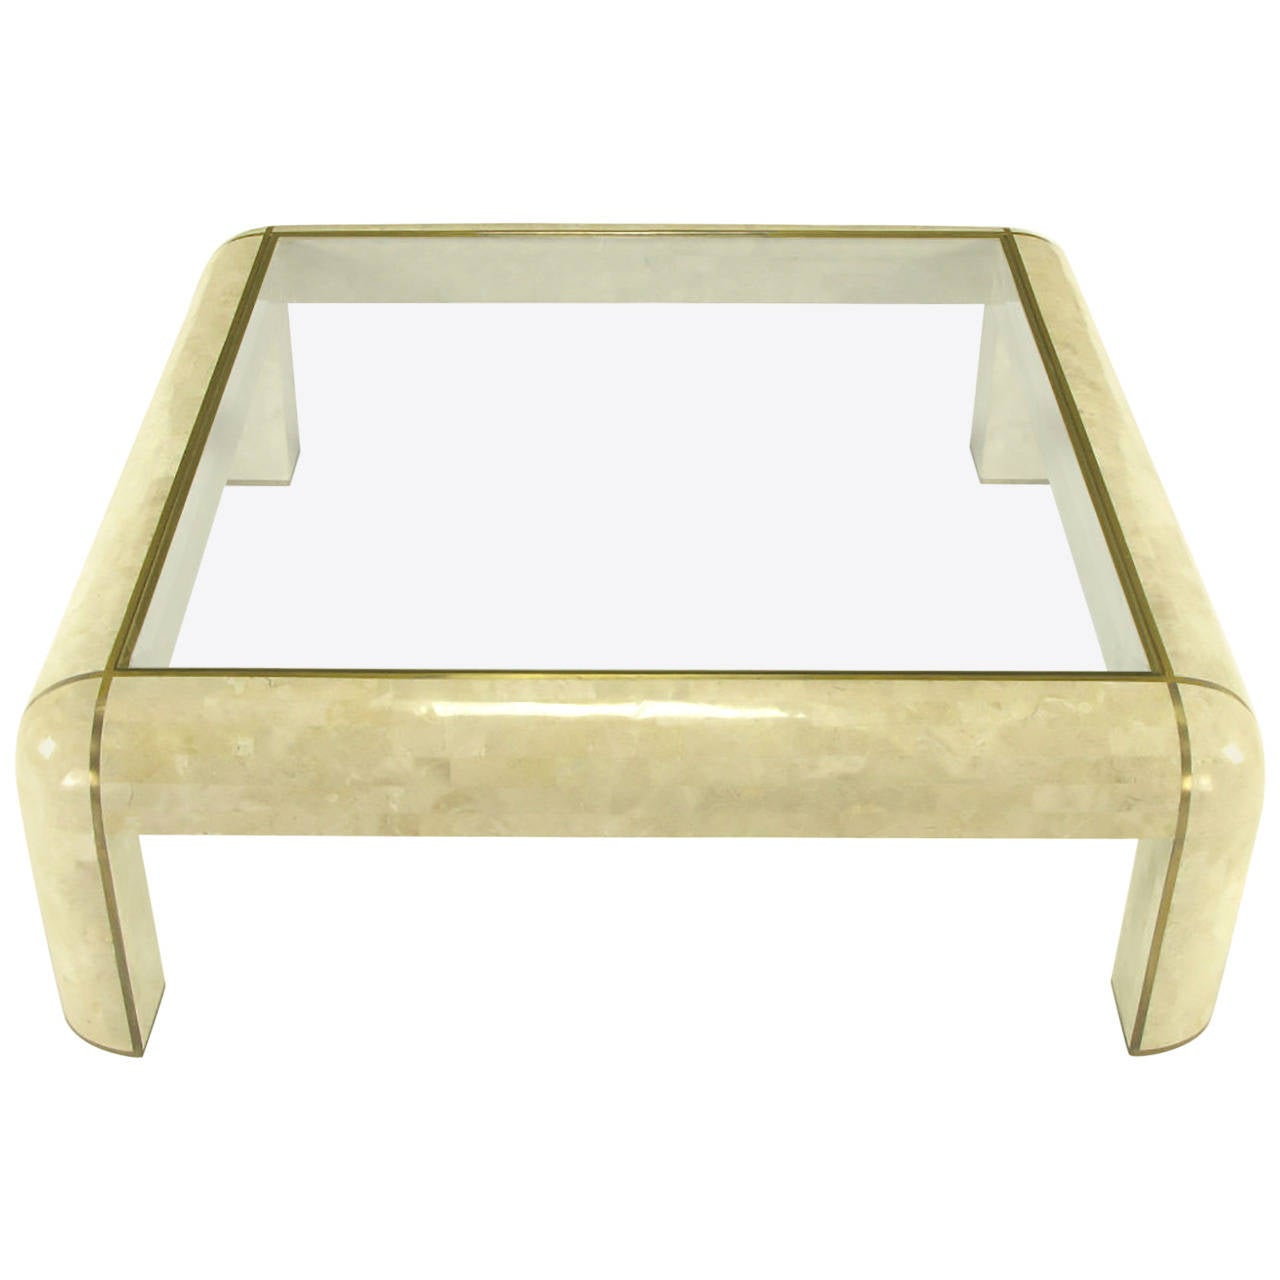 Square Maitland Smith Tessellated Fossil Stone and Inlaid Brass Coffee Table